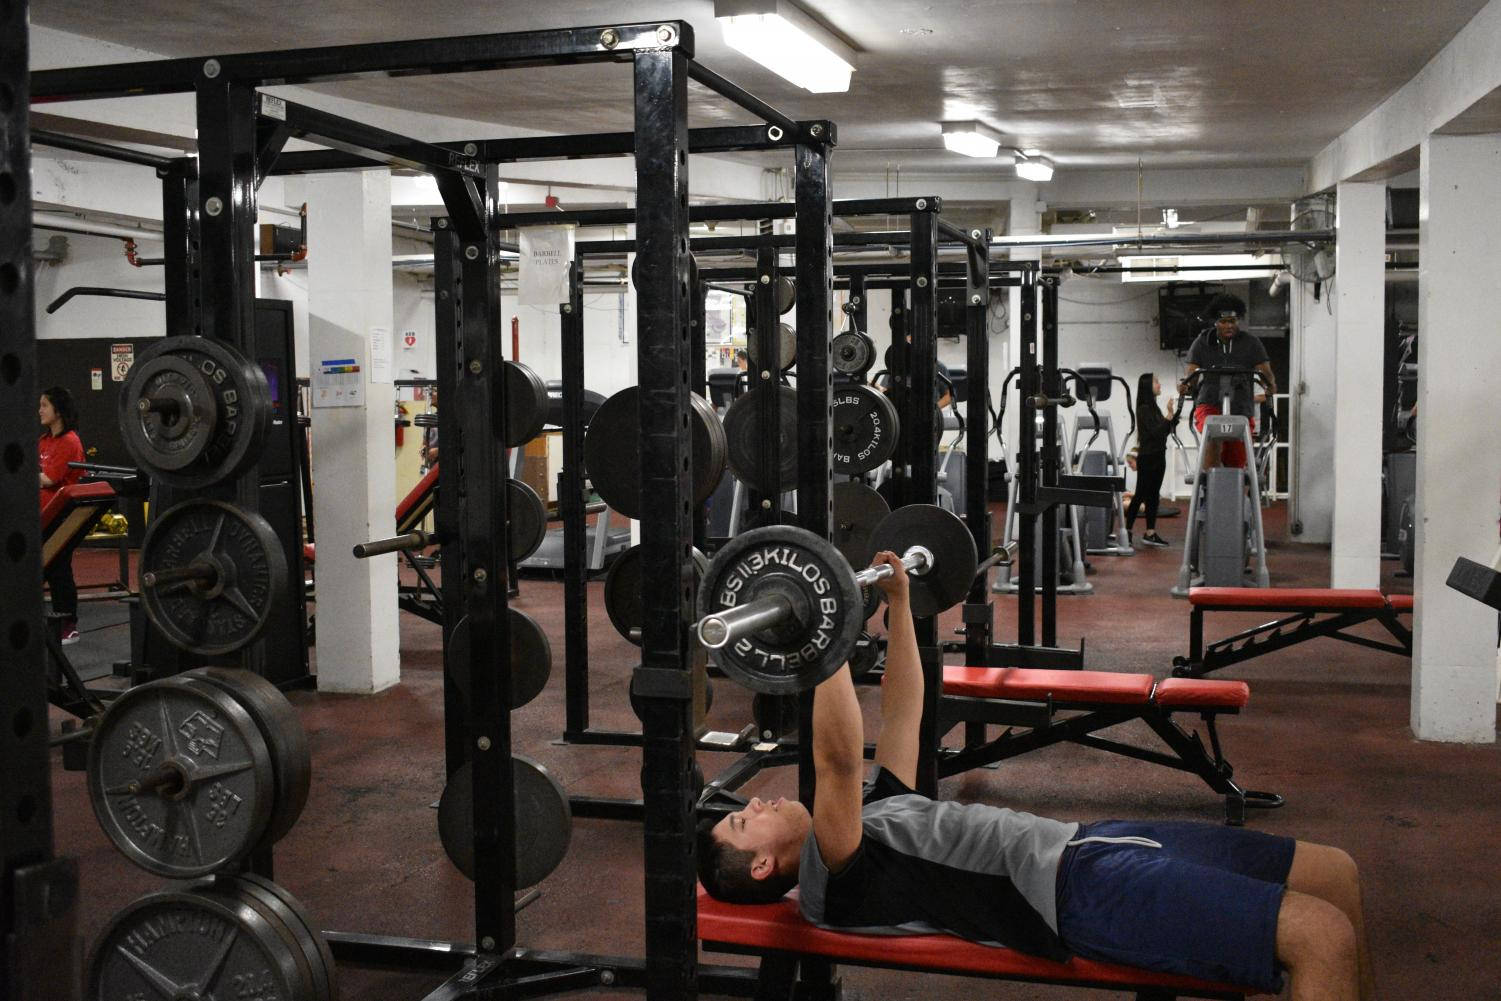 The fitness center in the basement and the Bouchard Center in the field house are open to students, so they can lift weights and work out during their off-season.